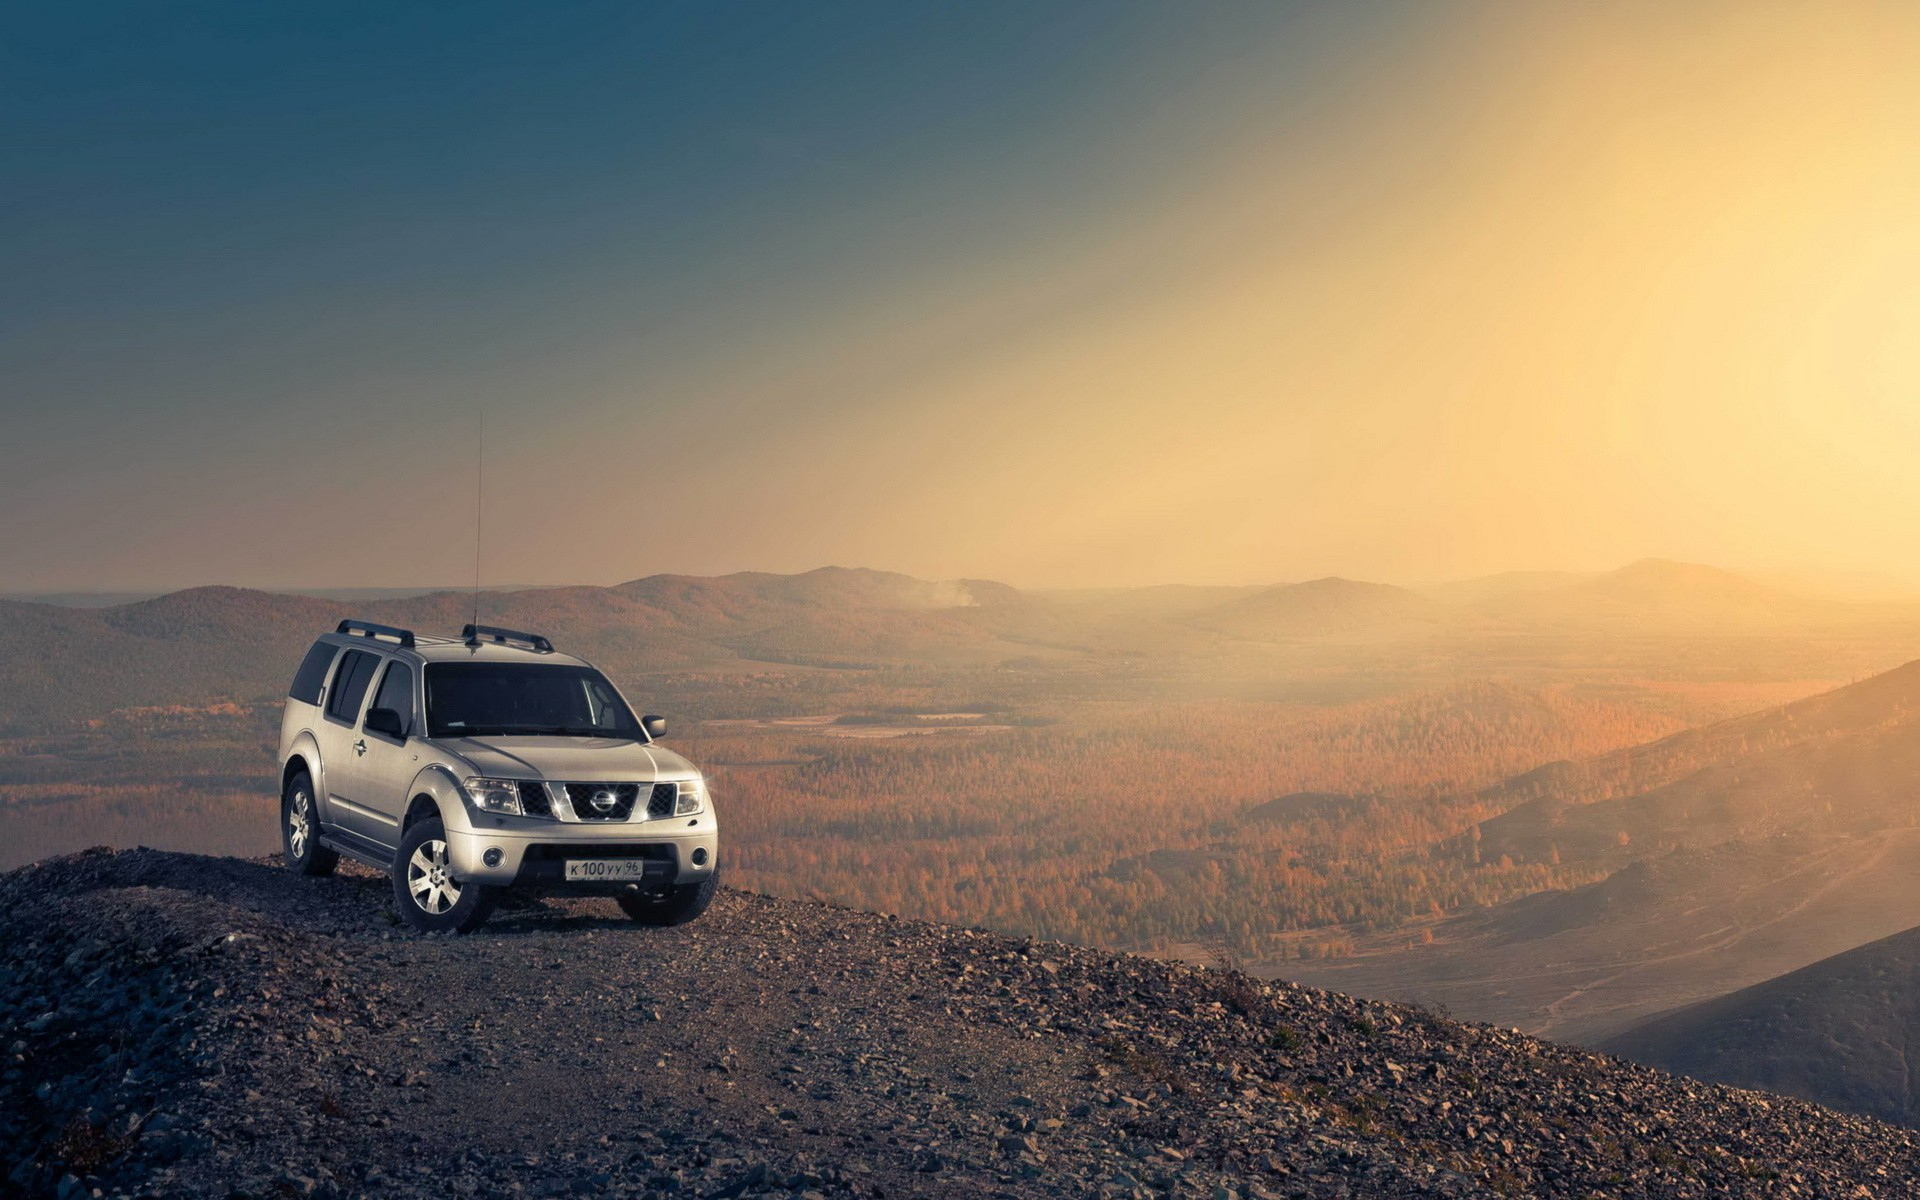 nissan pathfinder on hill top wallpapers | nissan pathfinder on hill